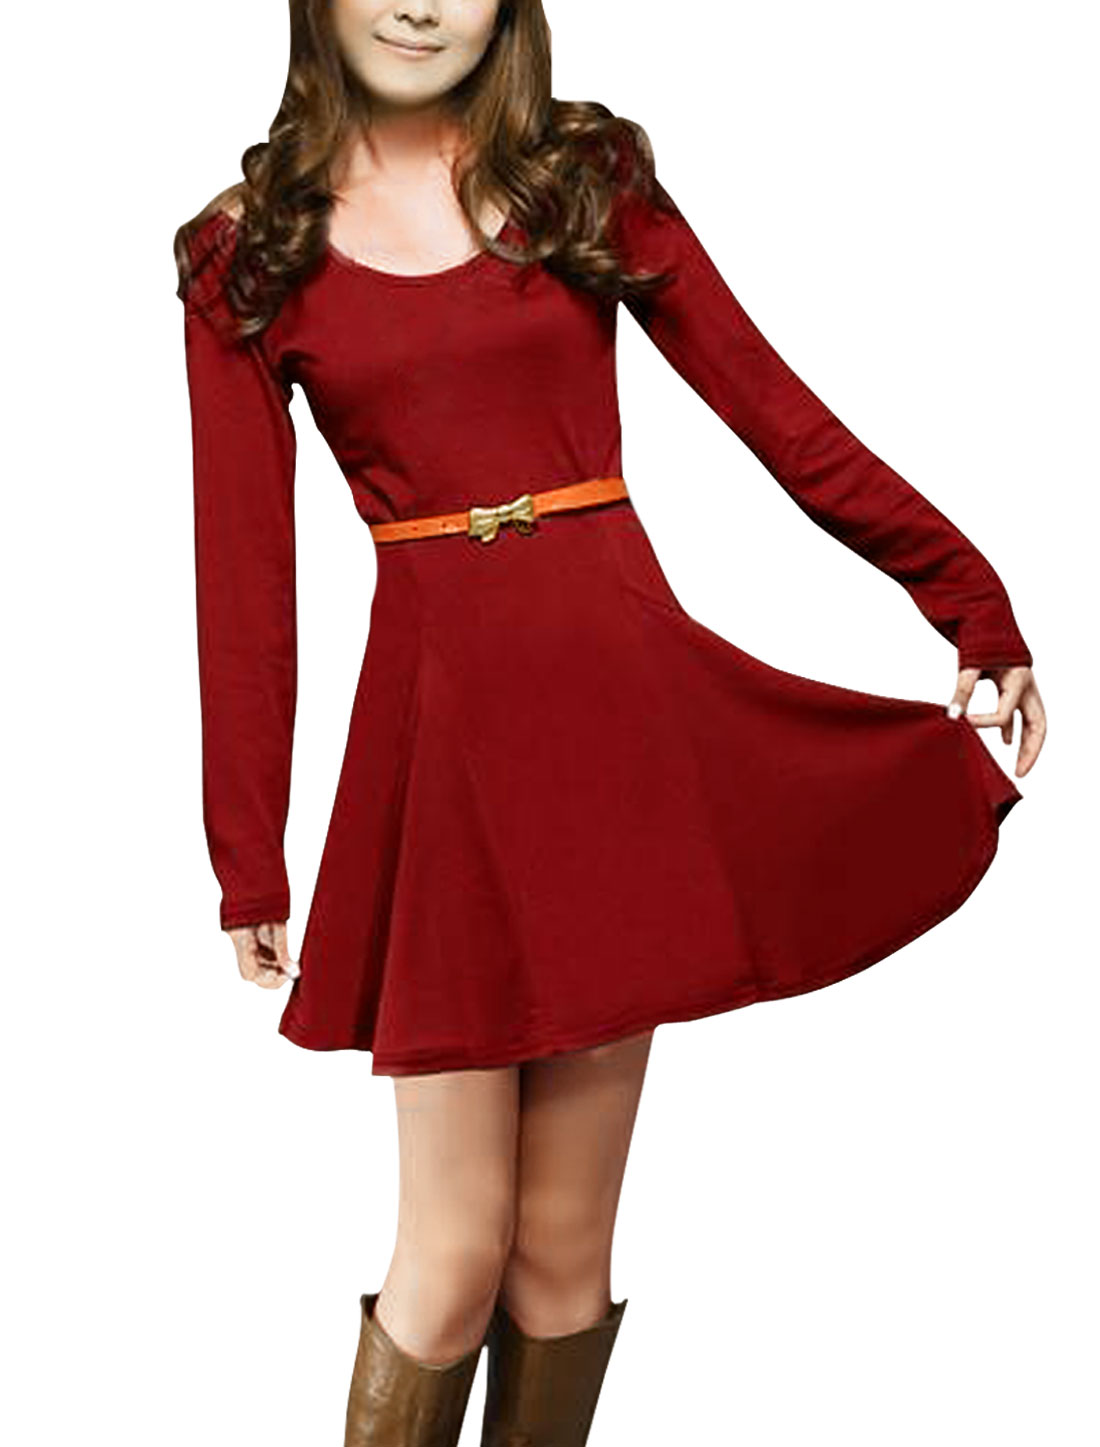 Lady Scoop Neck Cut Out Shoulders Dress w Belt Burgundy L